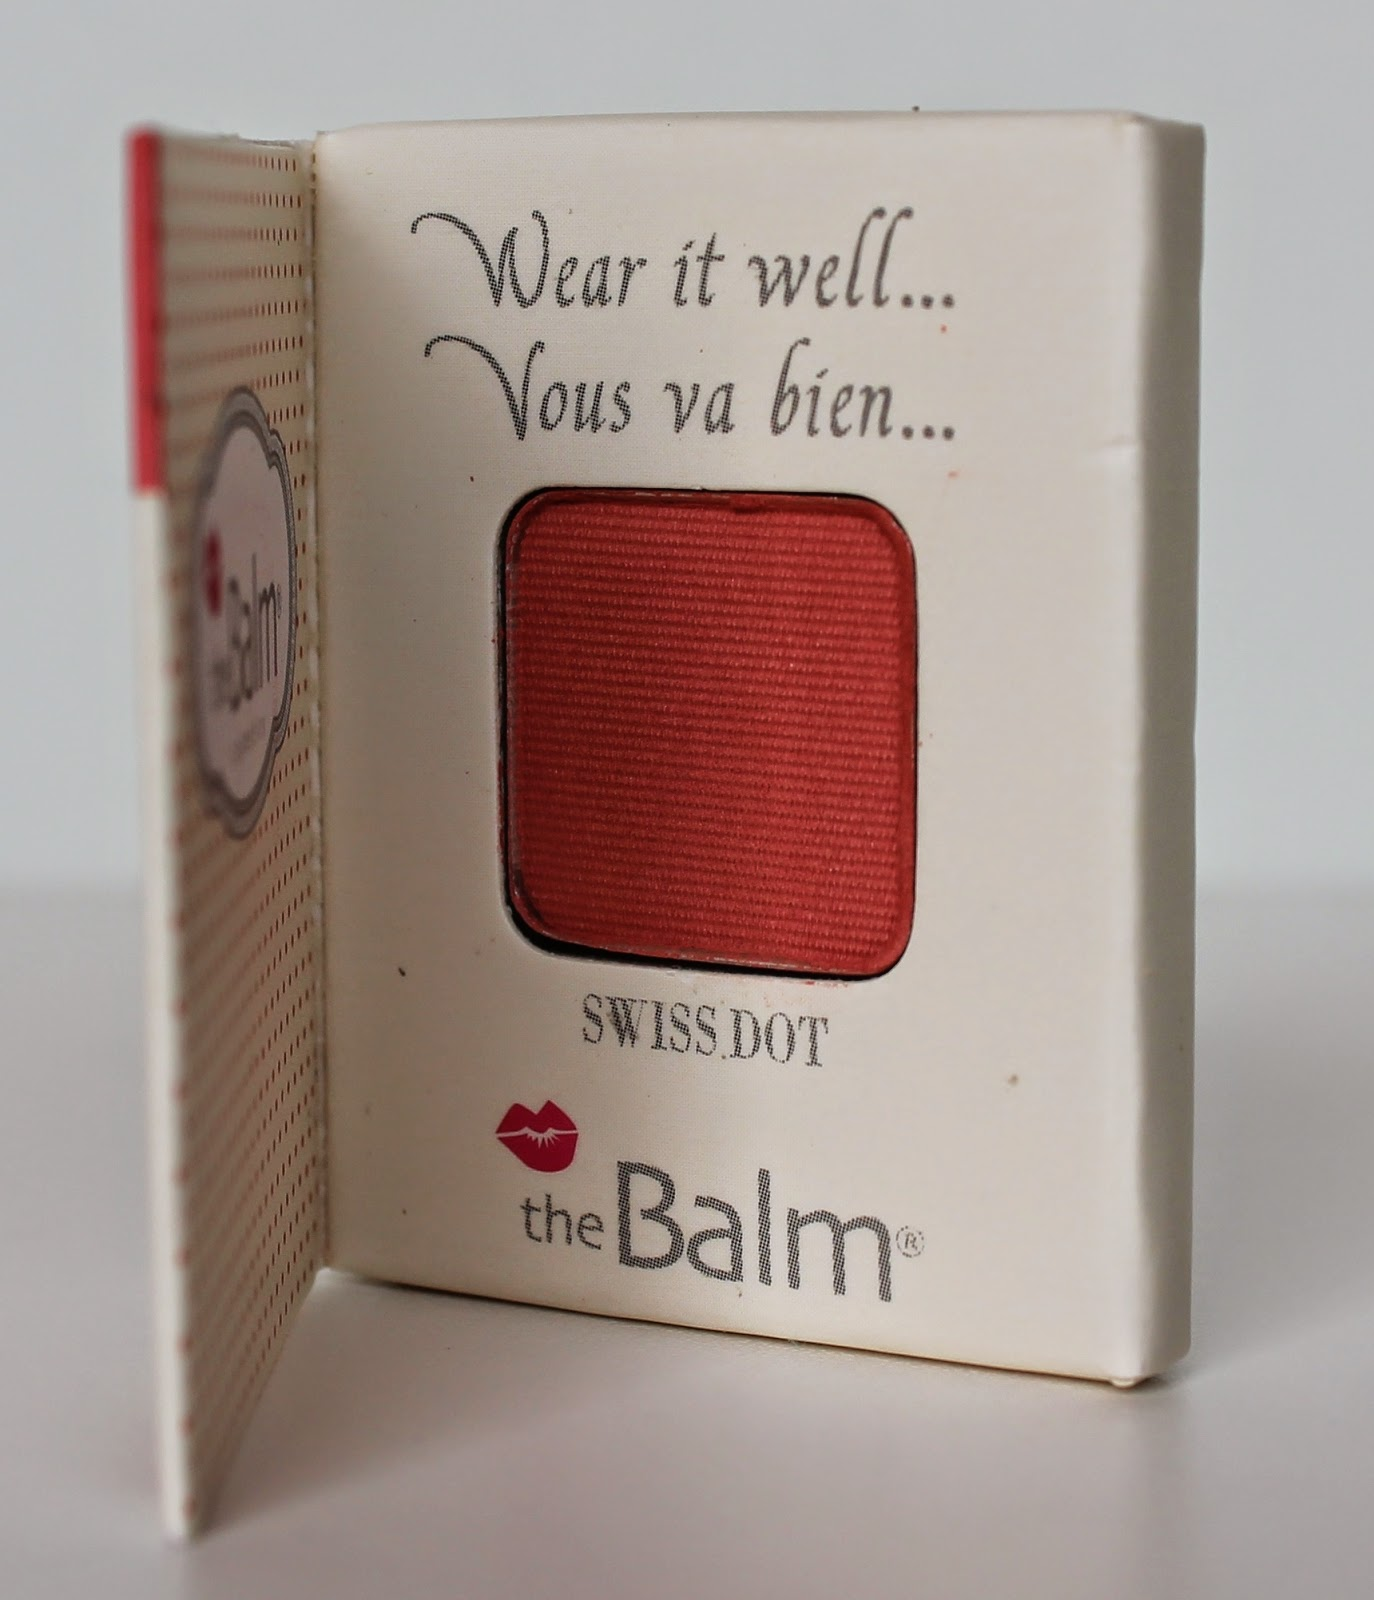 The Balm Instain Swiss Dot